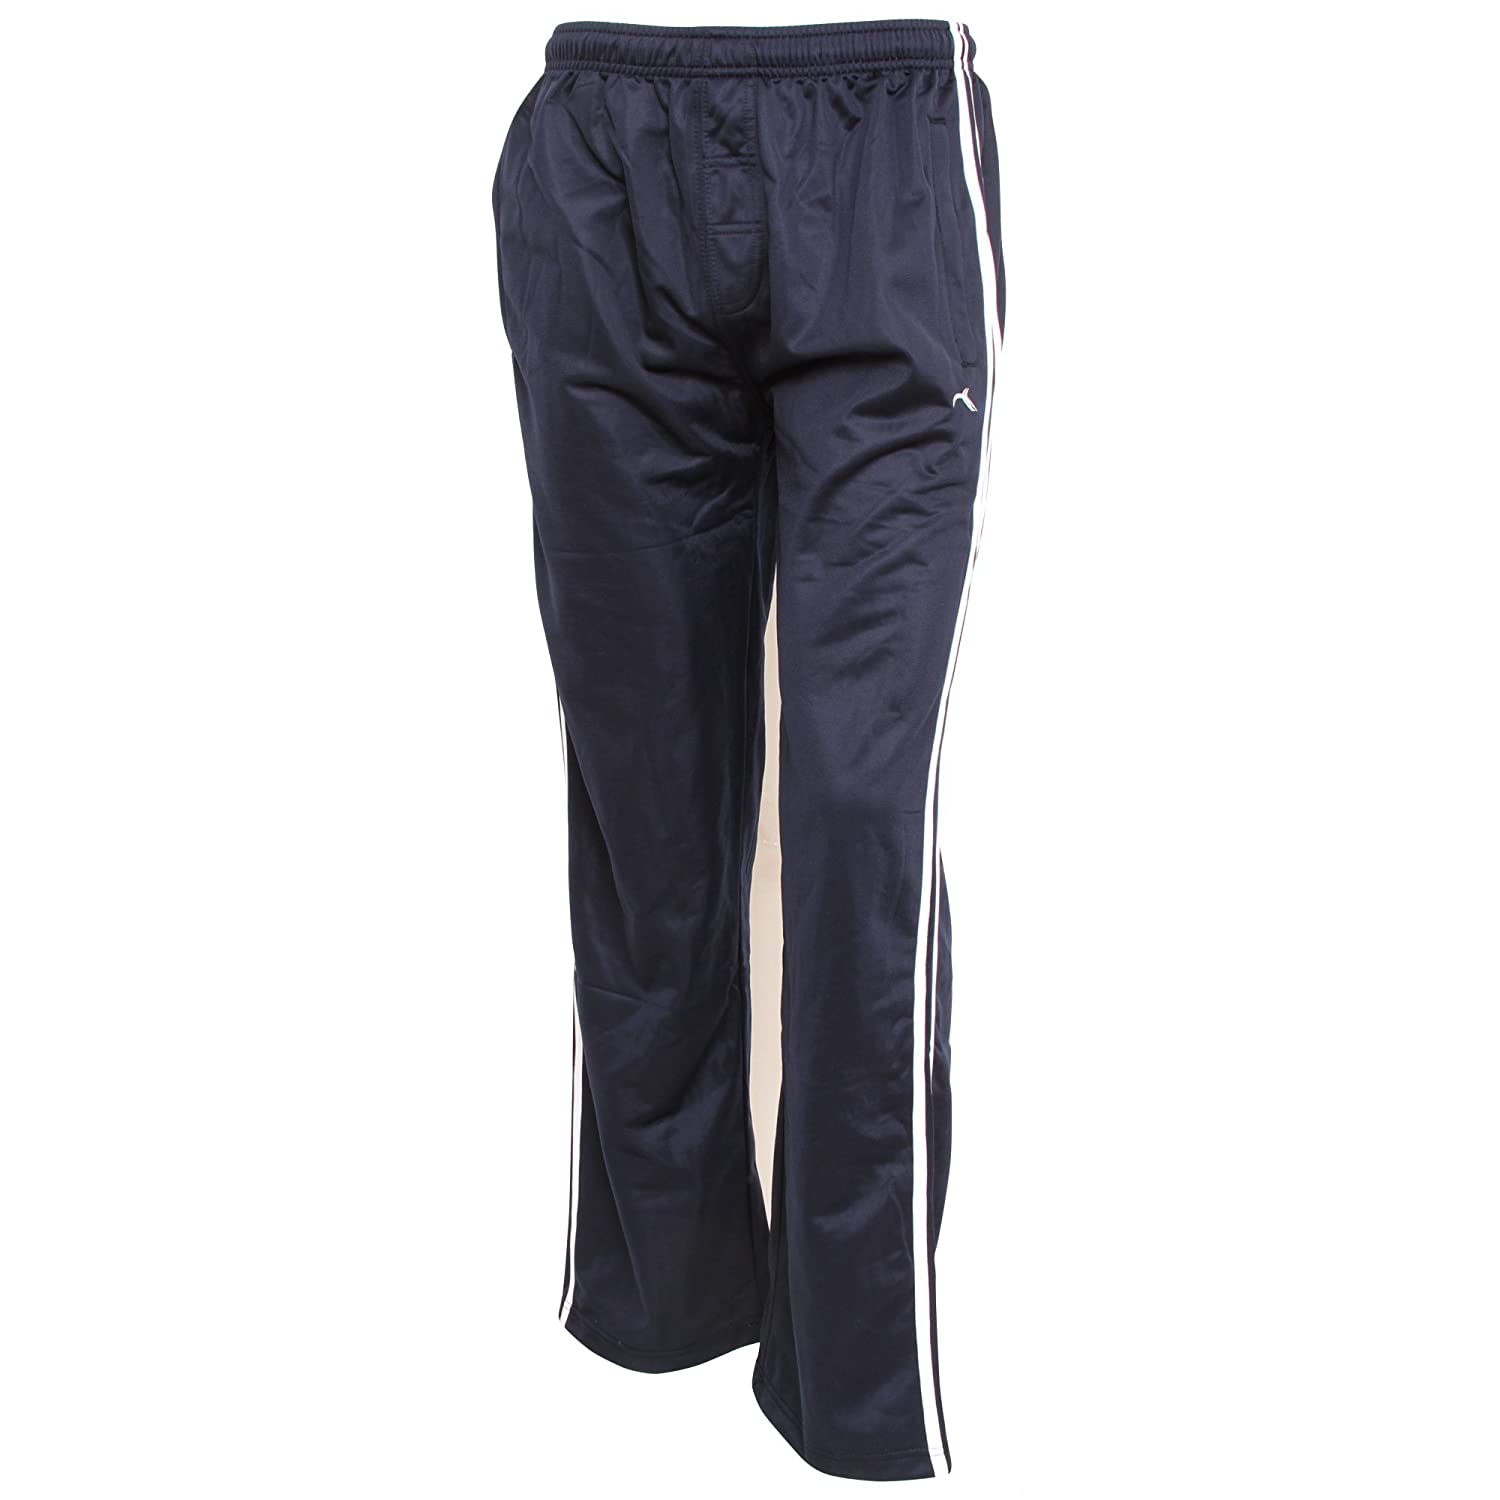 Universal Textiles Mens Sportswear Tracksuit/Jogging Bottoms (Open Cuff)